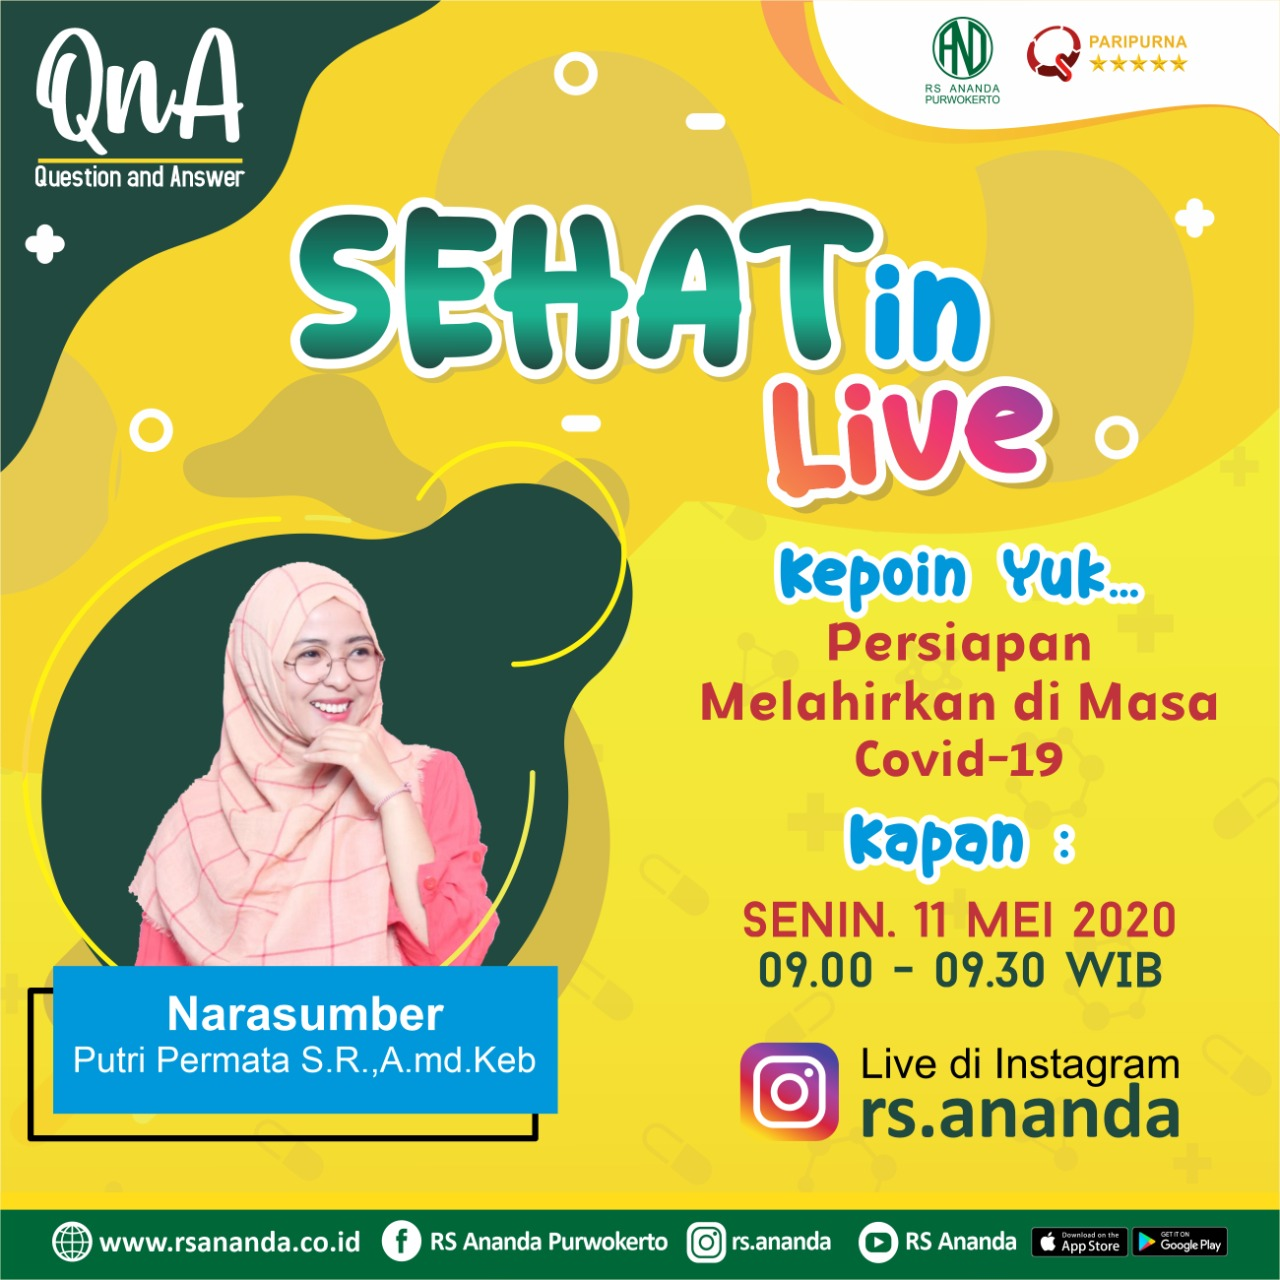 SEHAT in LIVE – RS ANANDA PURWOKERTO WhatsApp Image 2020 05 08 at 21